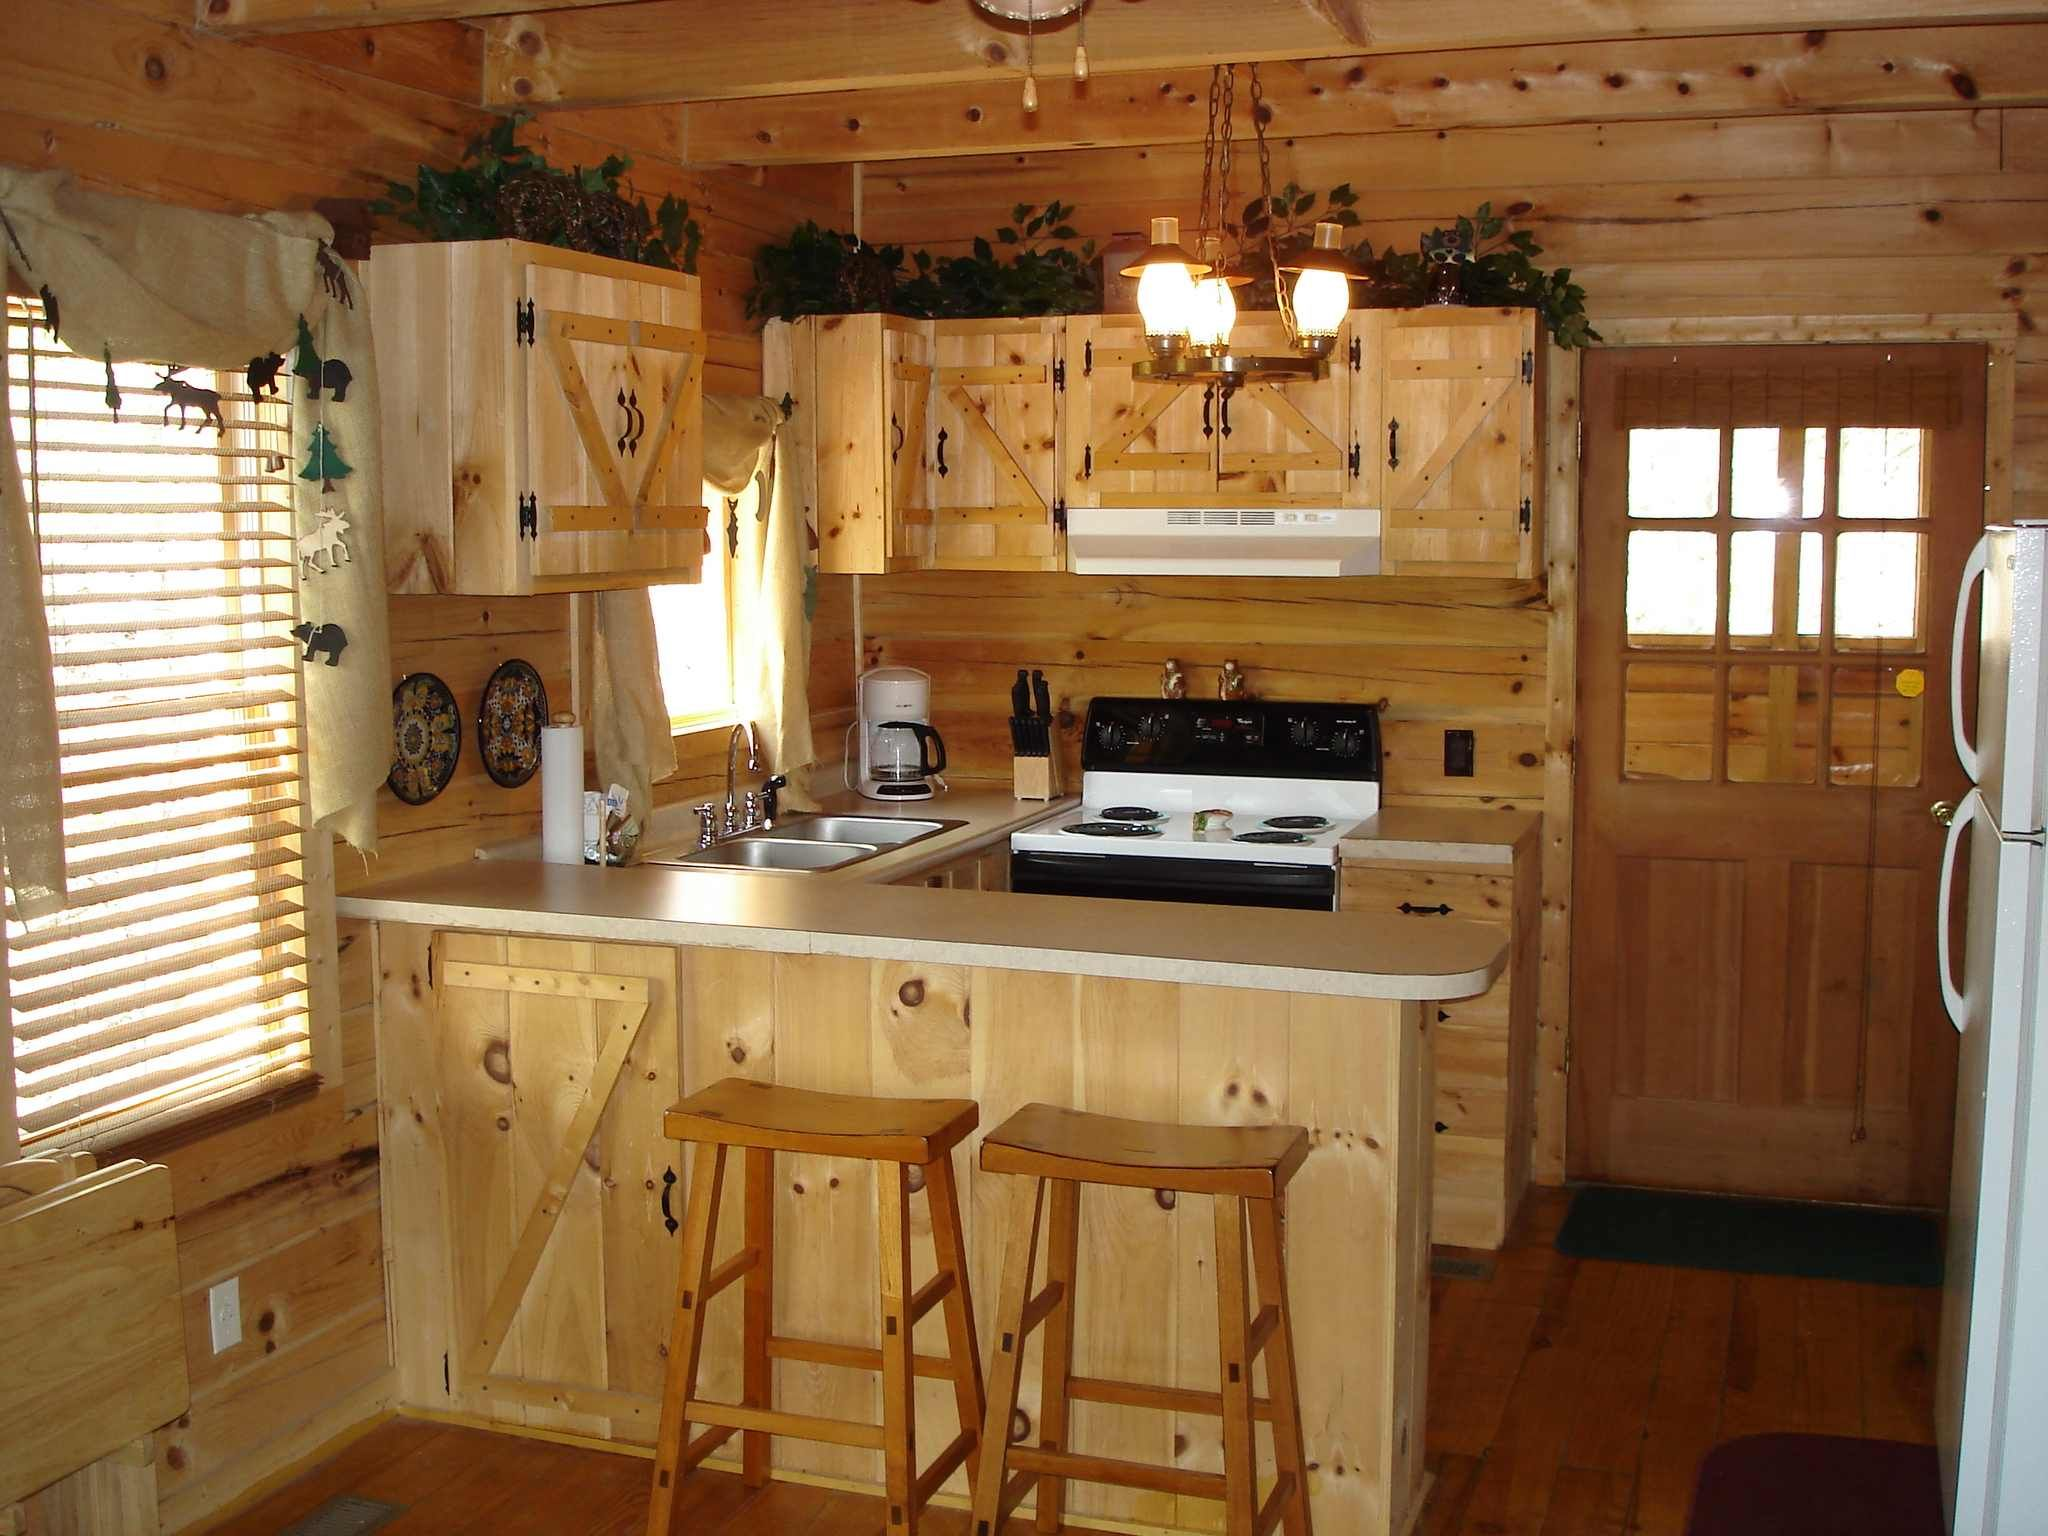 Best 25 Rustic cabin kitchens ideas on Pinterest